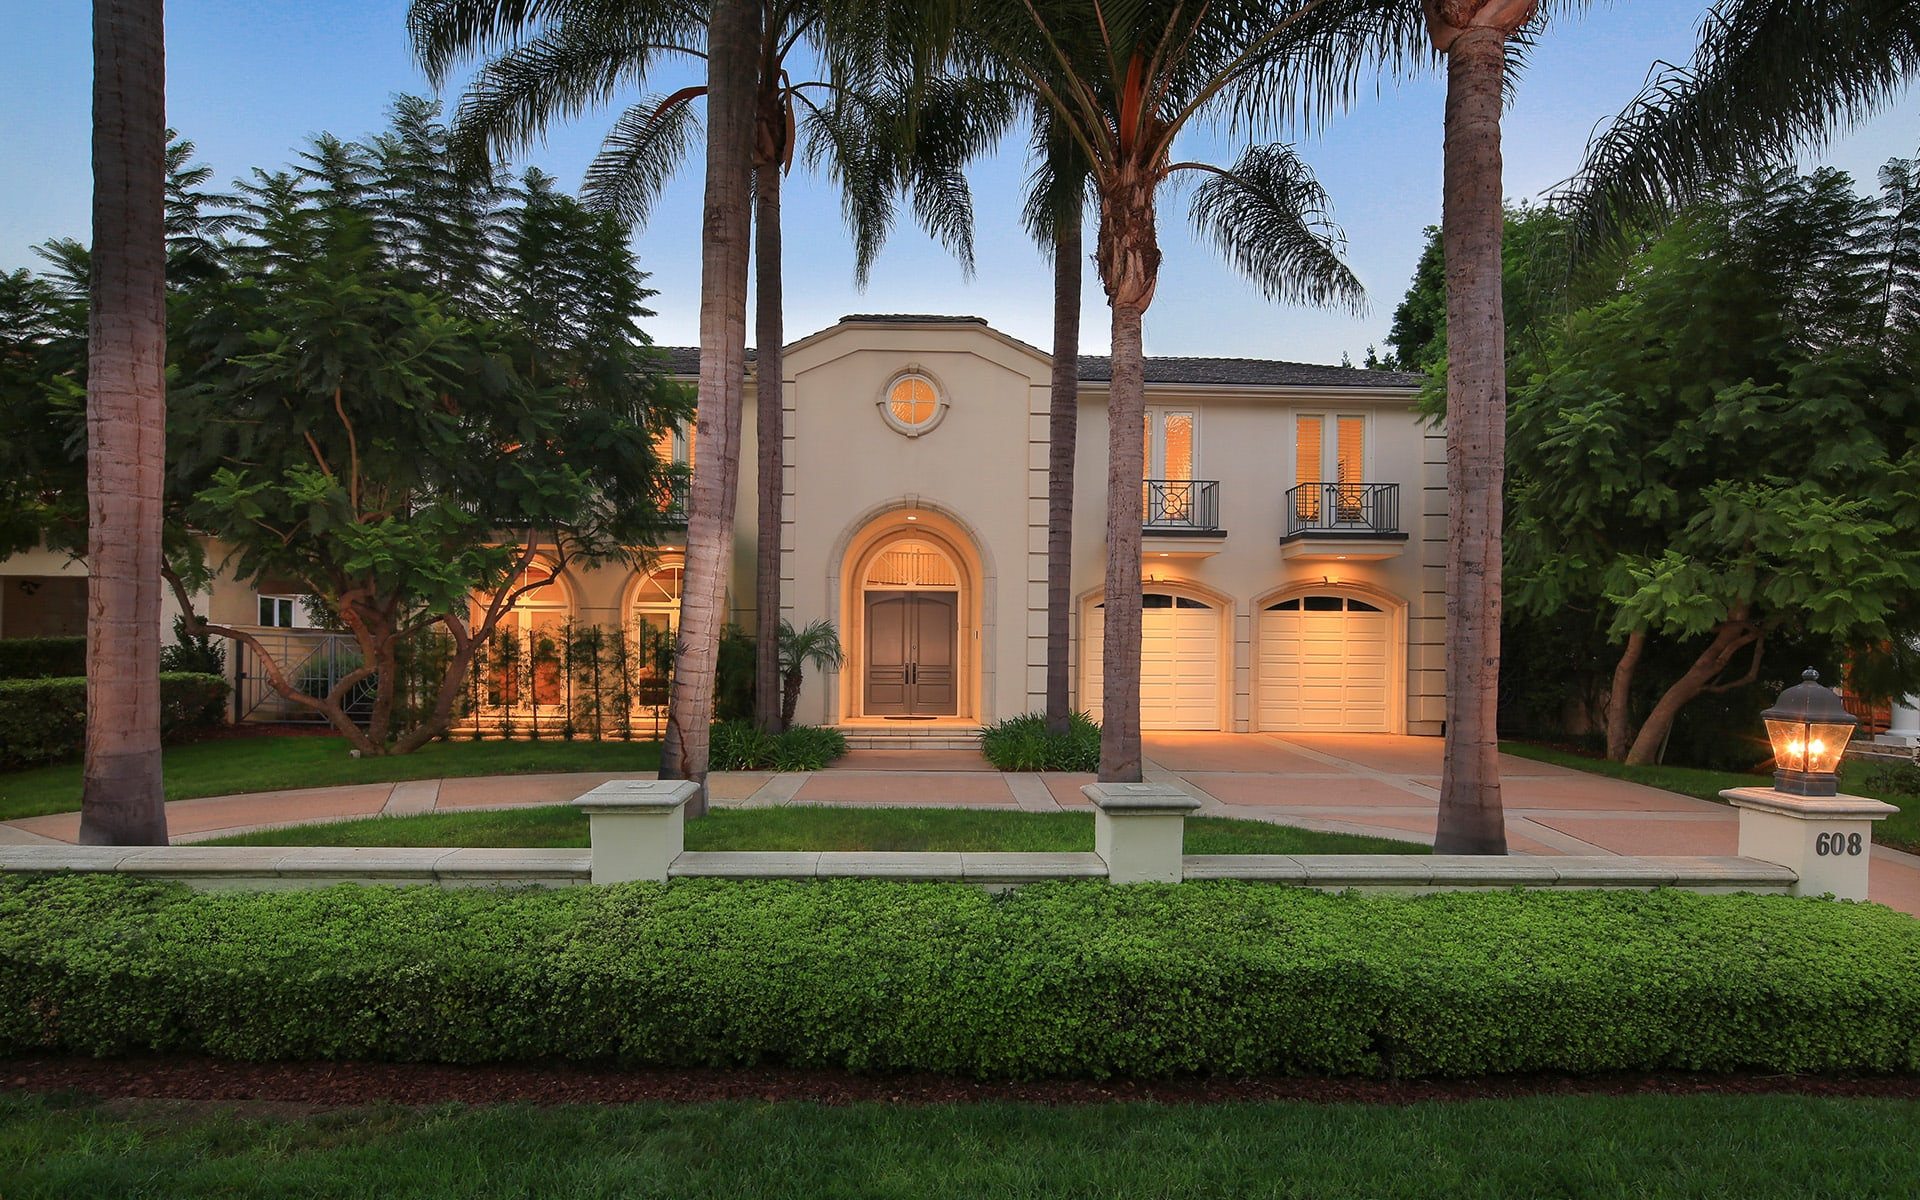 Single Family Home for Sale at 608 N Roxbury Dr 608 N Roxbury Dr Beverly Hills, California,90210 United States